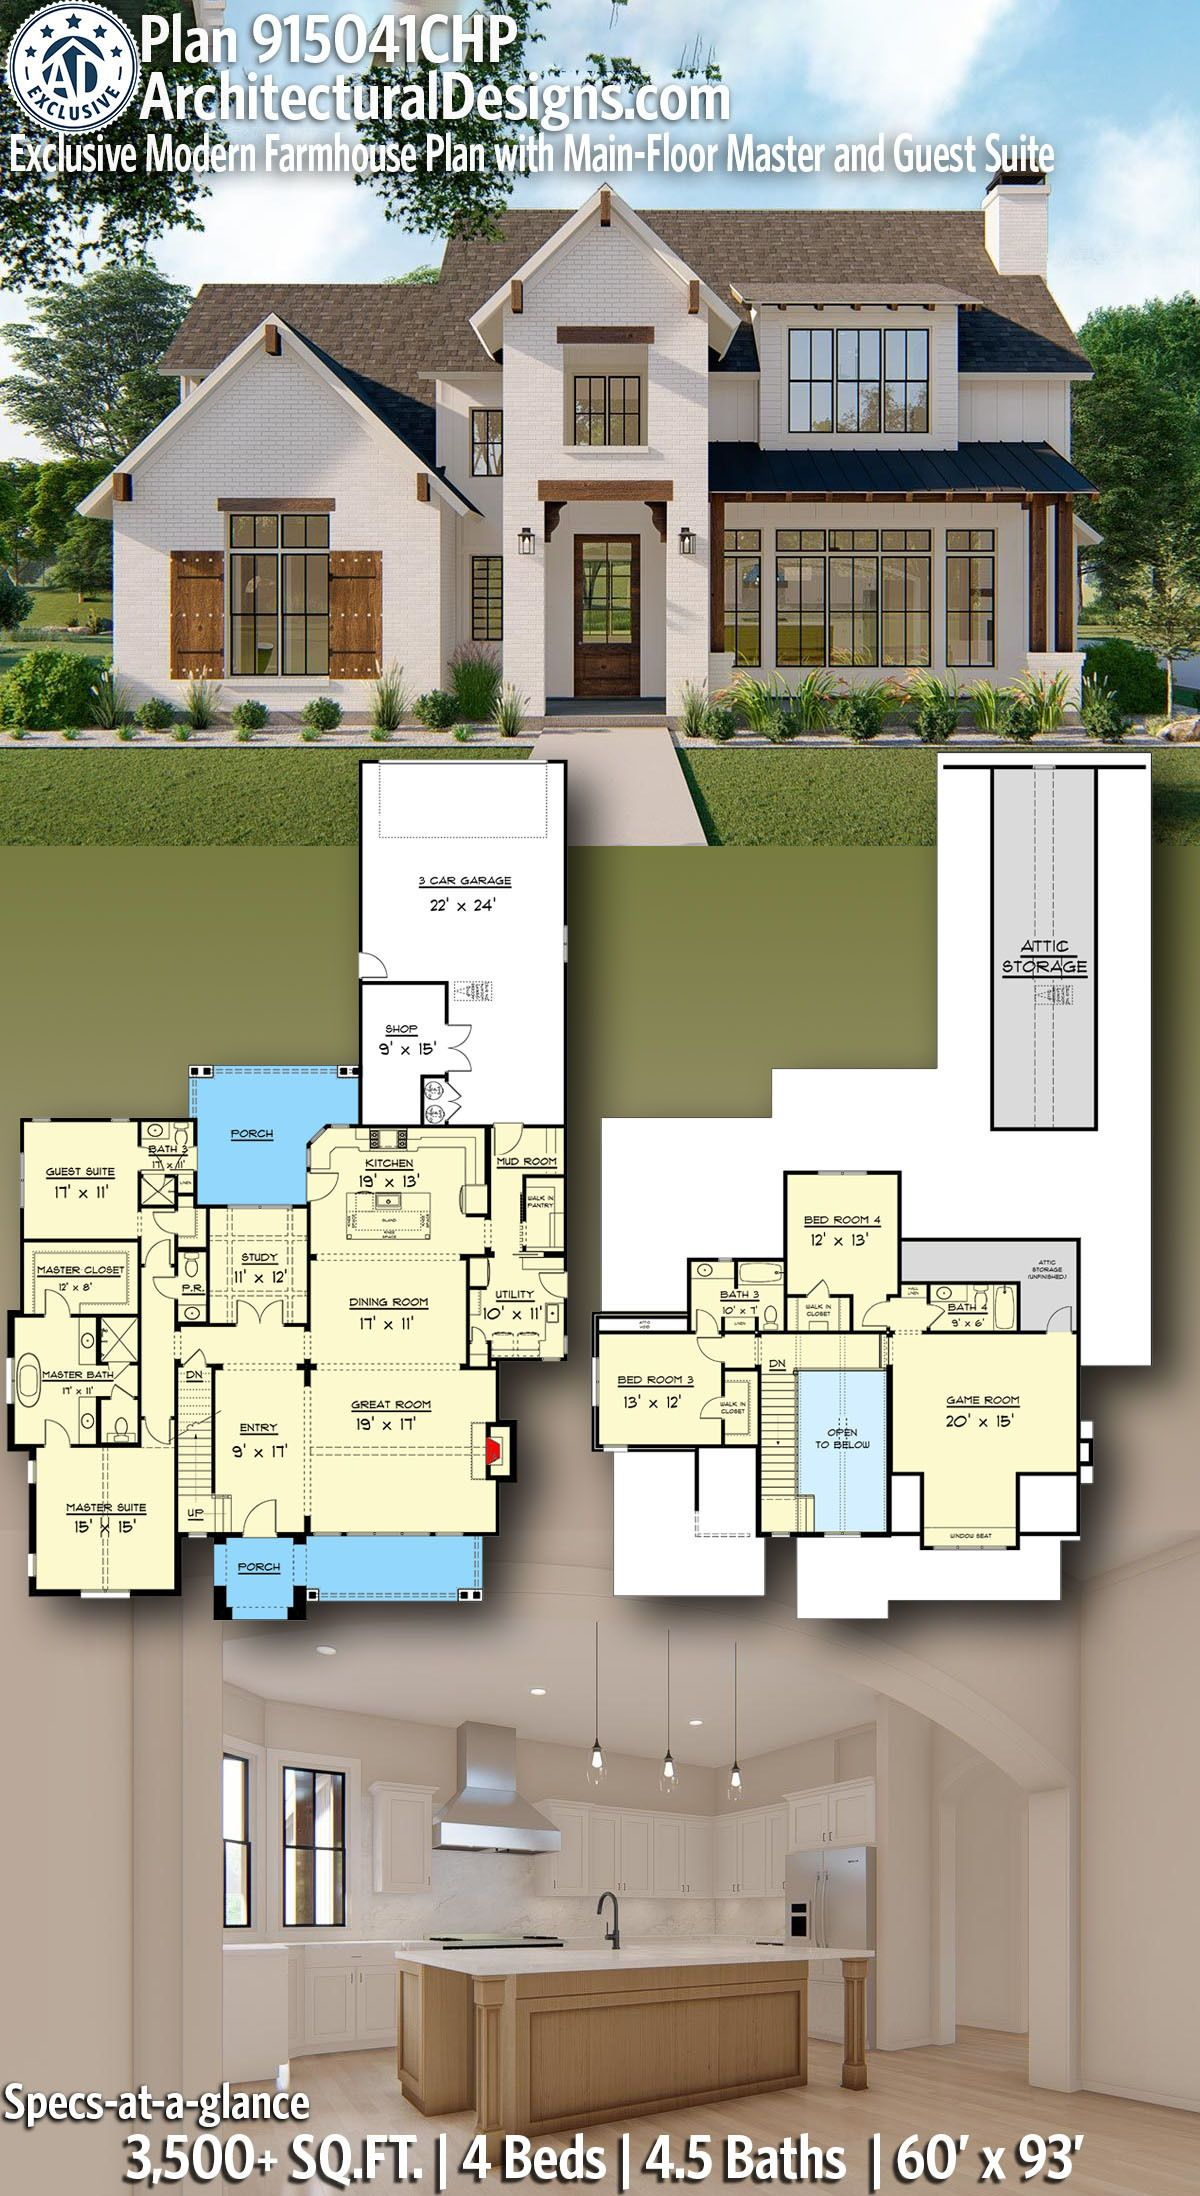 Plan CHP Exclusive Modern Farmhouse Plan with Main Floor Master and Guest Suite